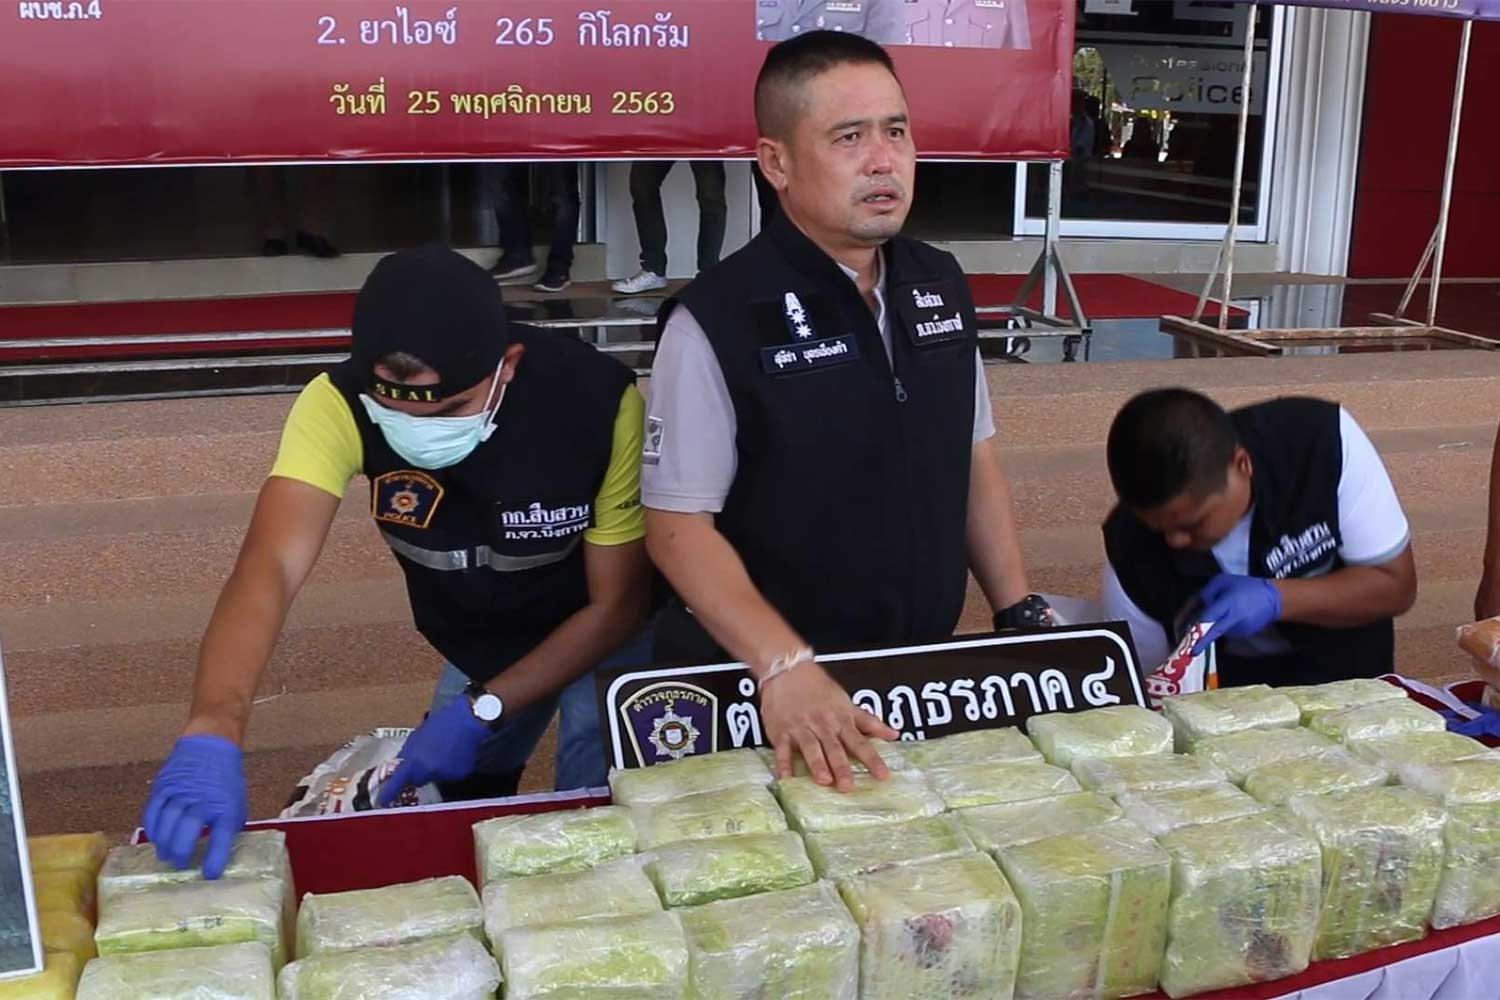 8m meth pills, 'ice' seized in Bung Kan